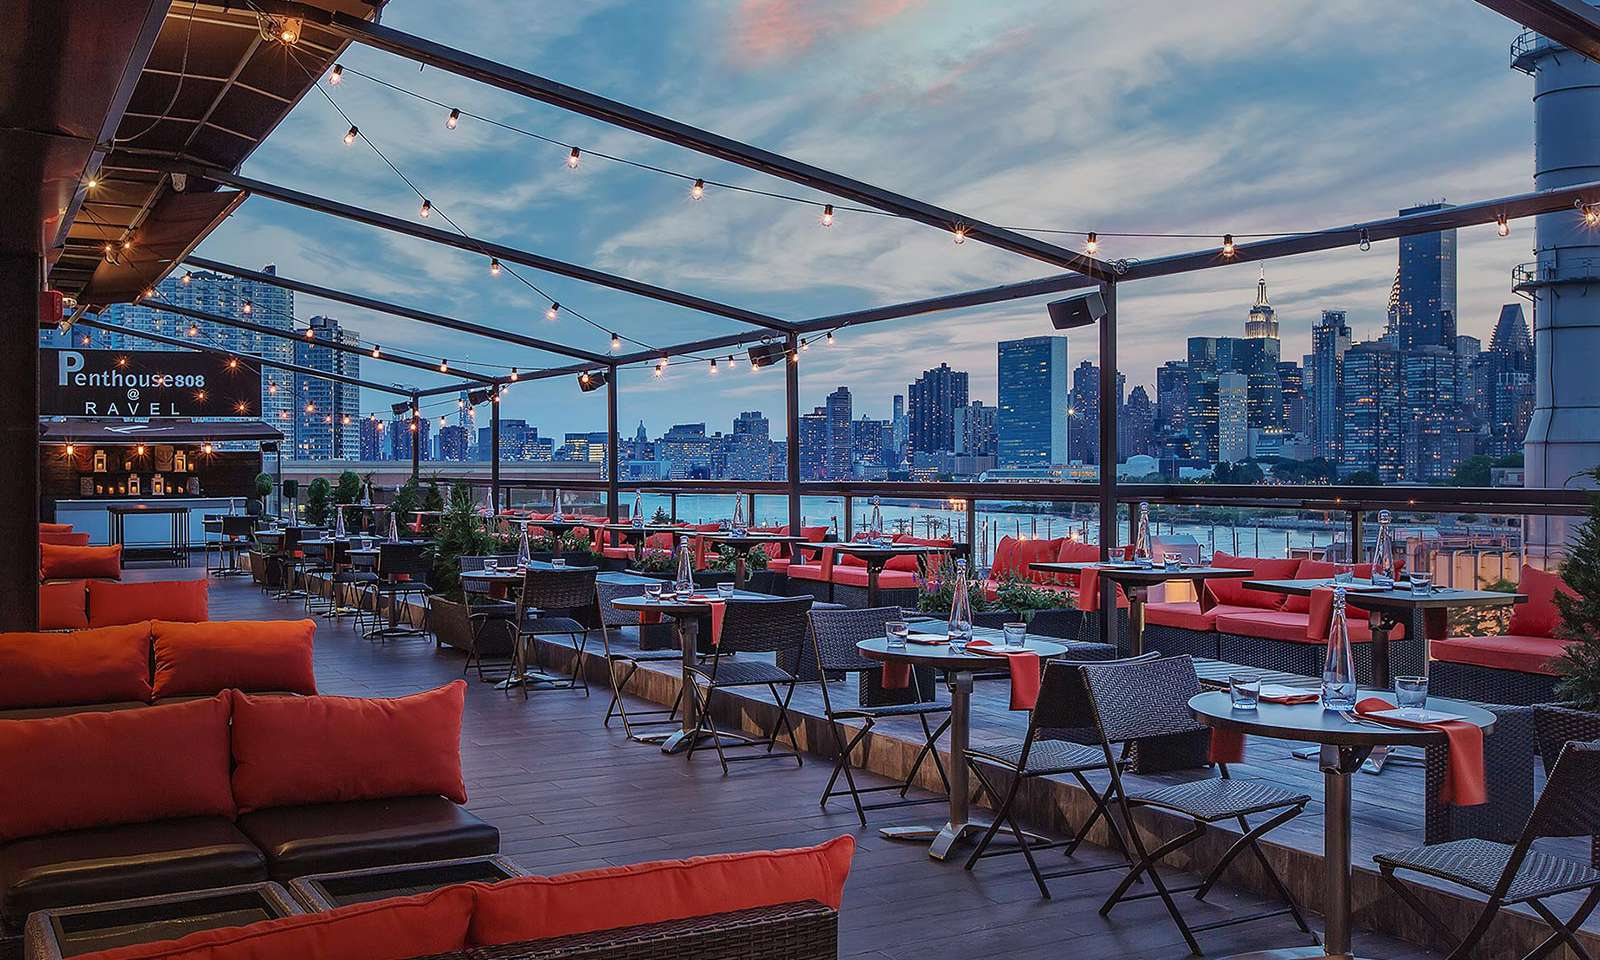 Penthouse808 Rooftop Bar and Lounge in Queens